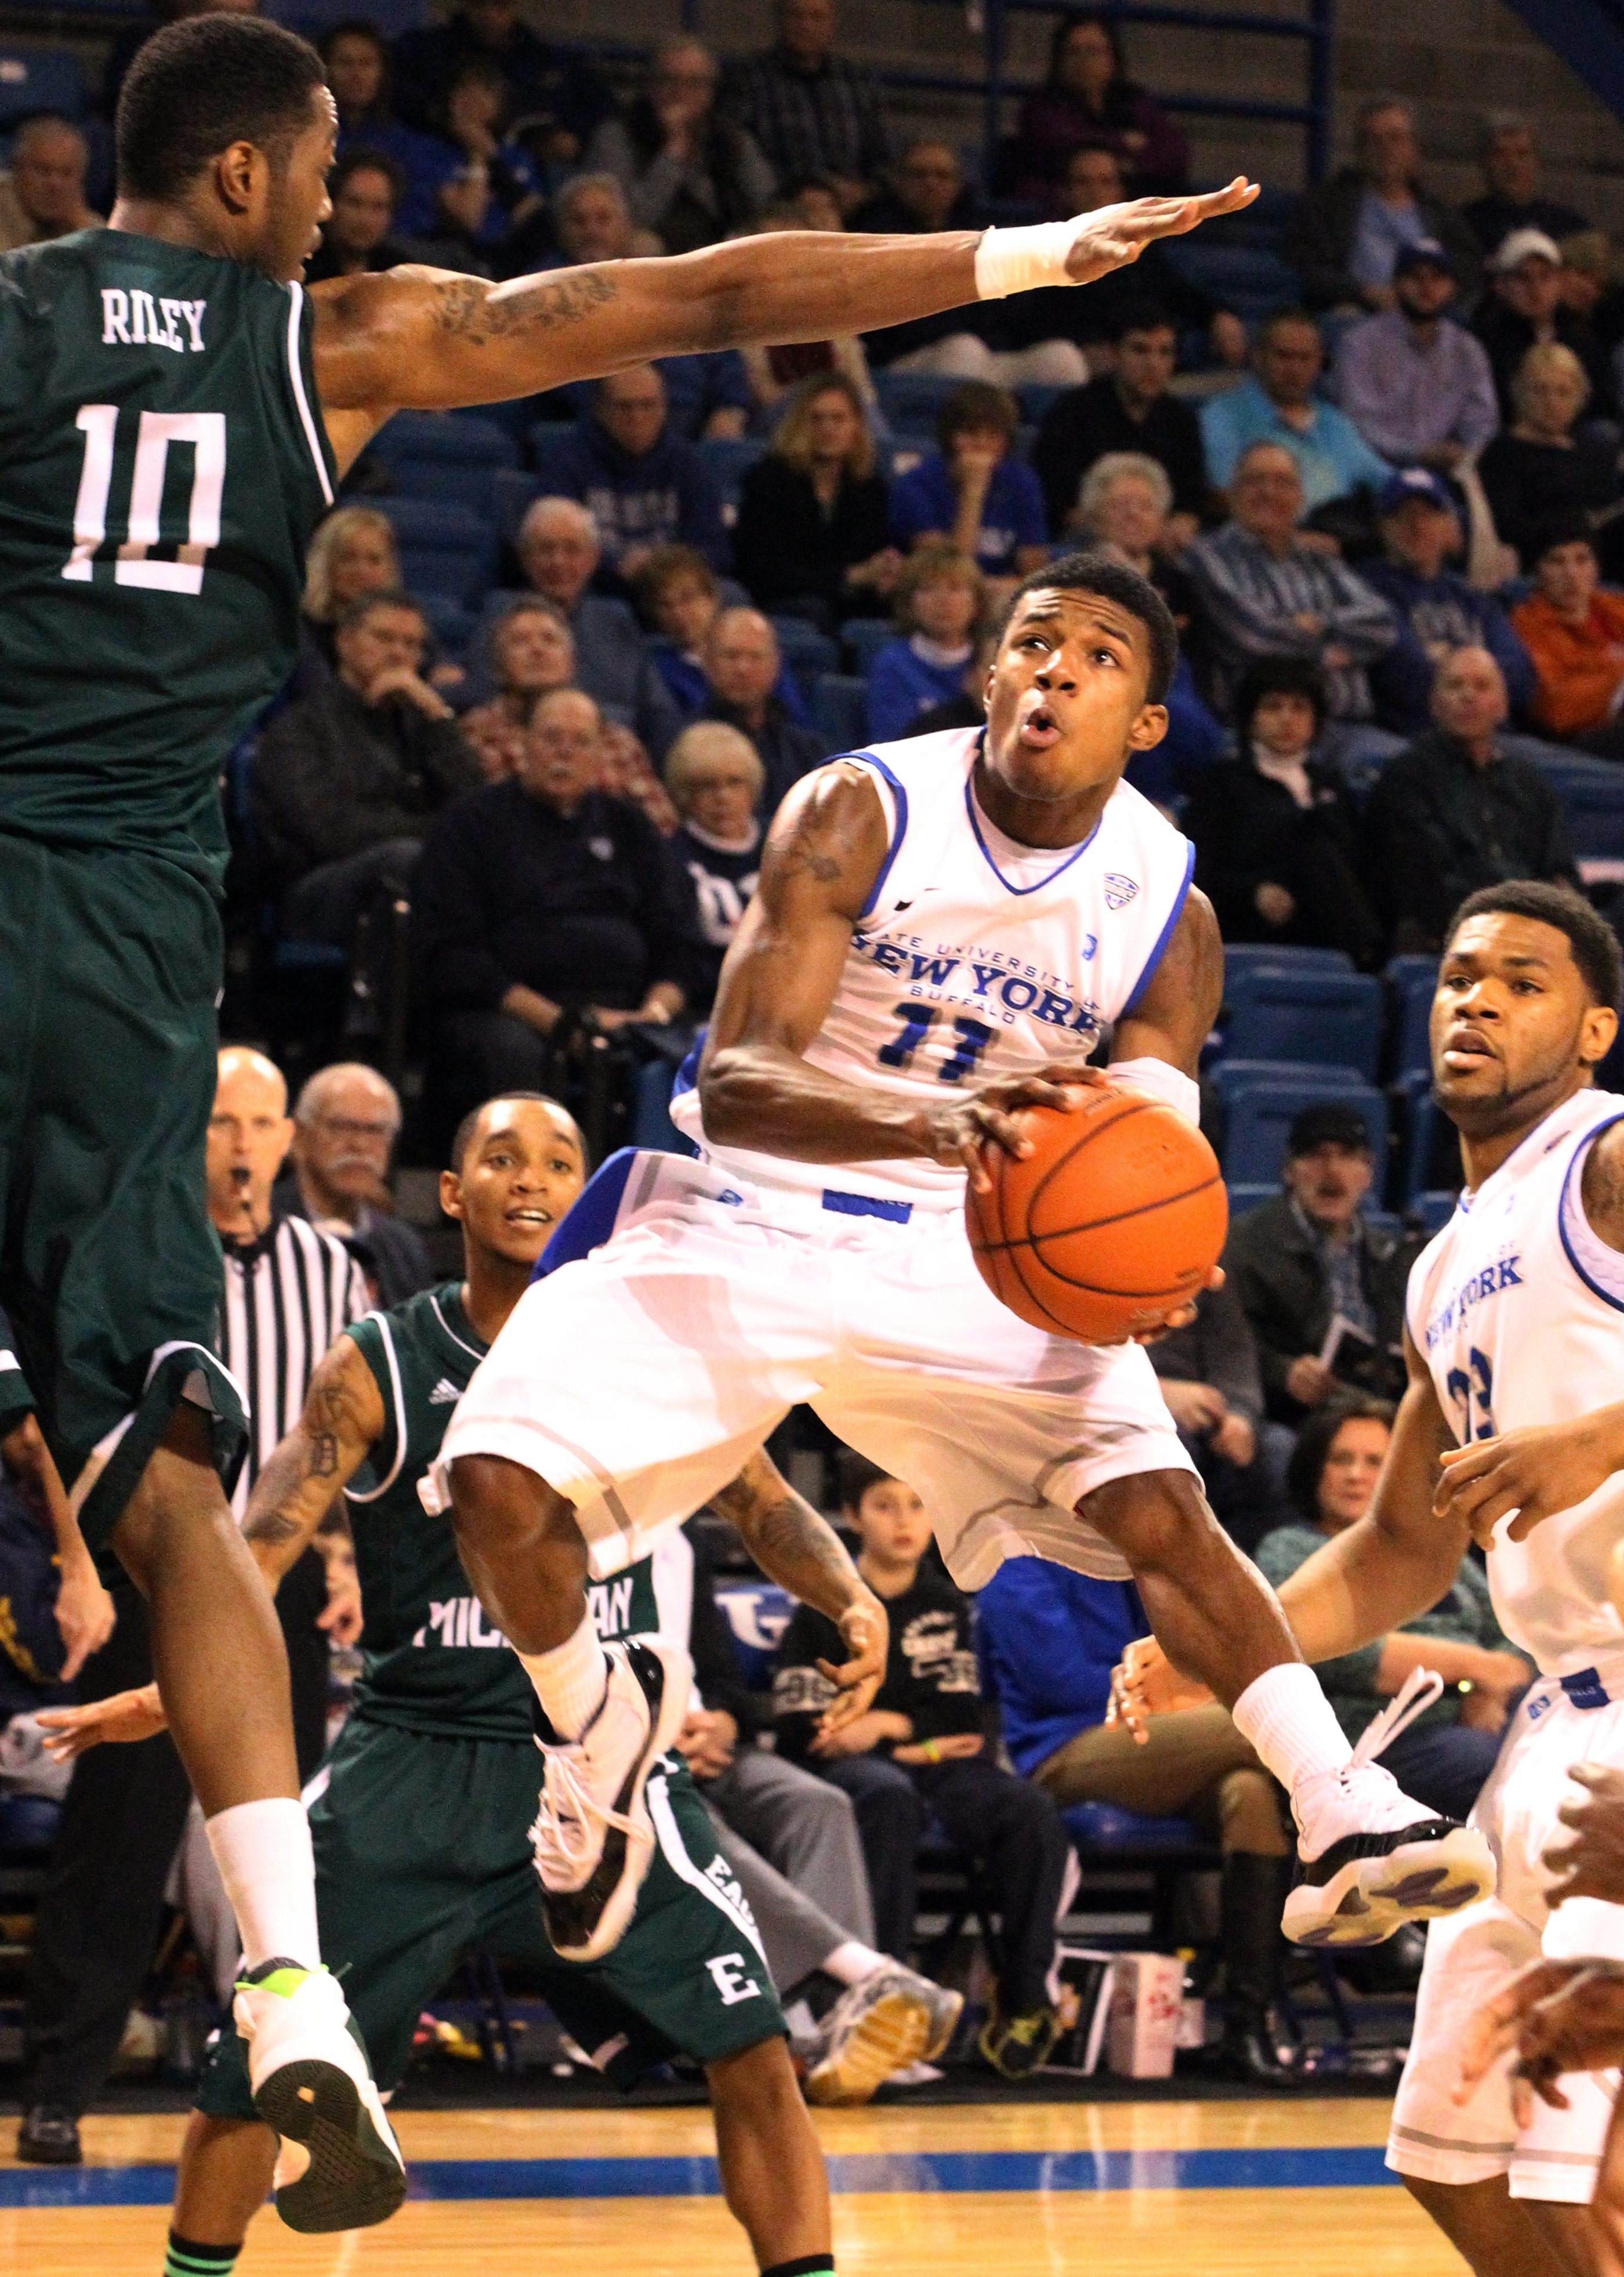 UB guard Shannon Evans (11) scores two points over Eastern Michigan's Da'Shonte Riley (10).